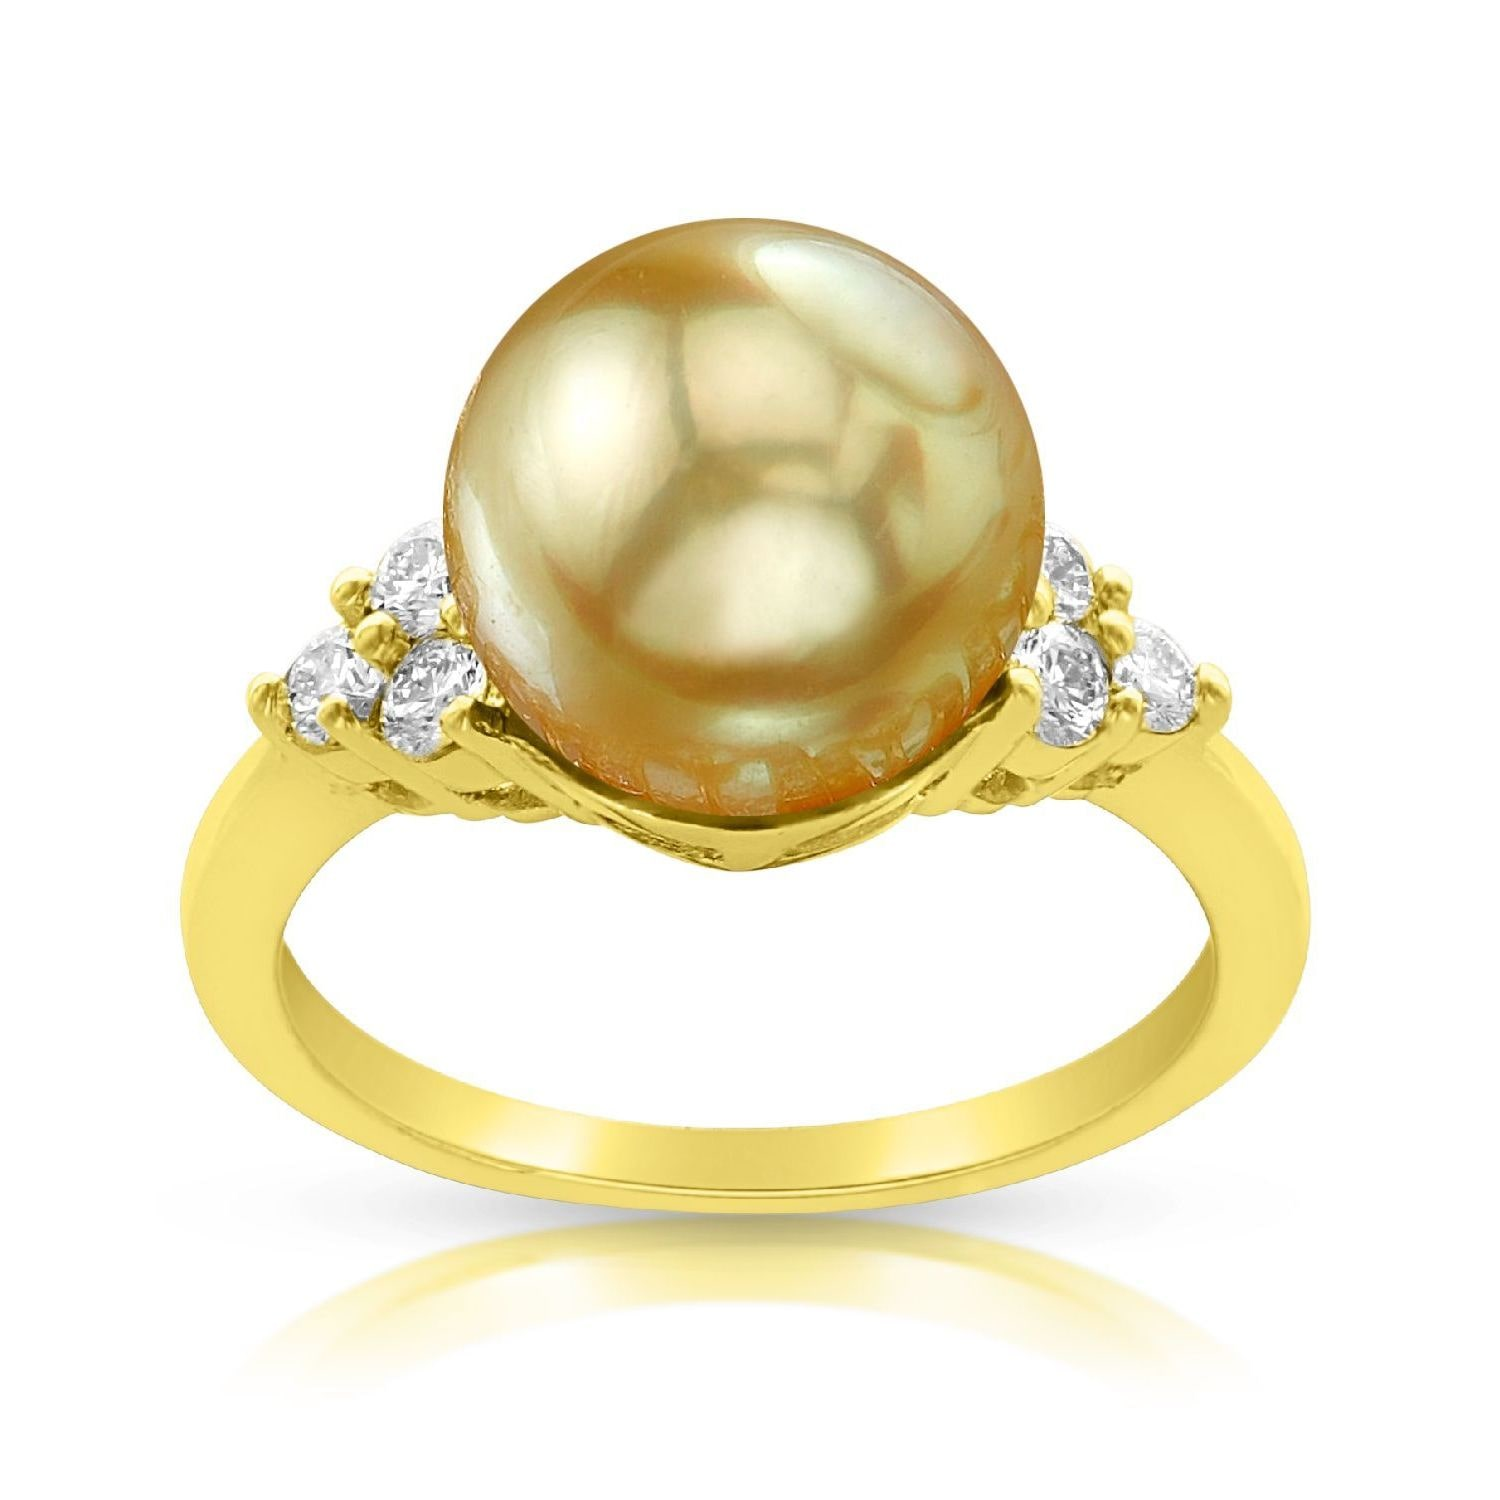 Radiance Pearl 14k Gold Golden South Sea Pearl and Diamond Accent Ring by Overstock